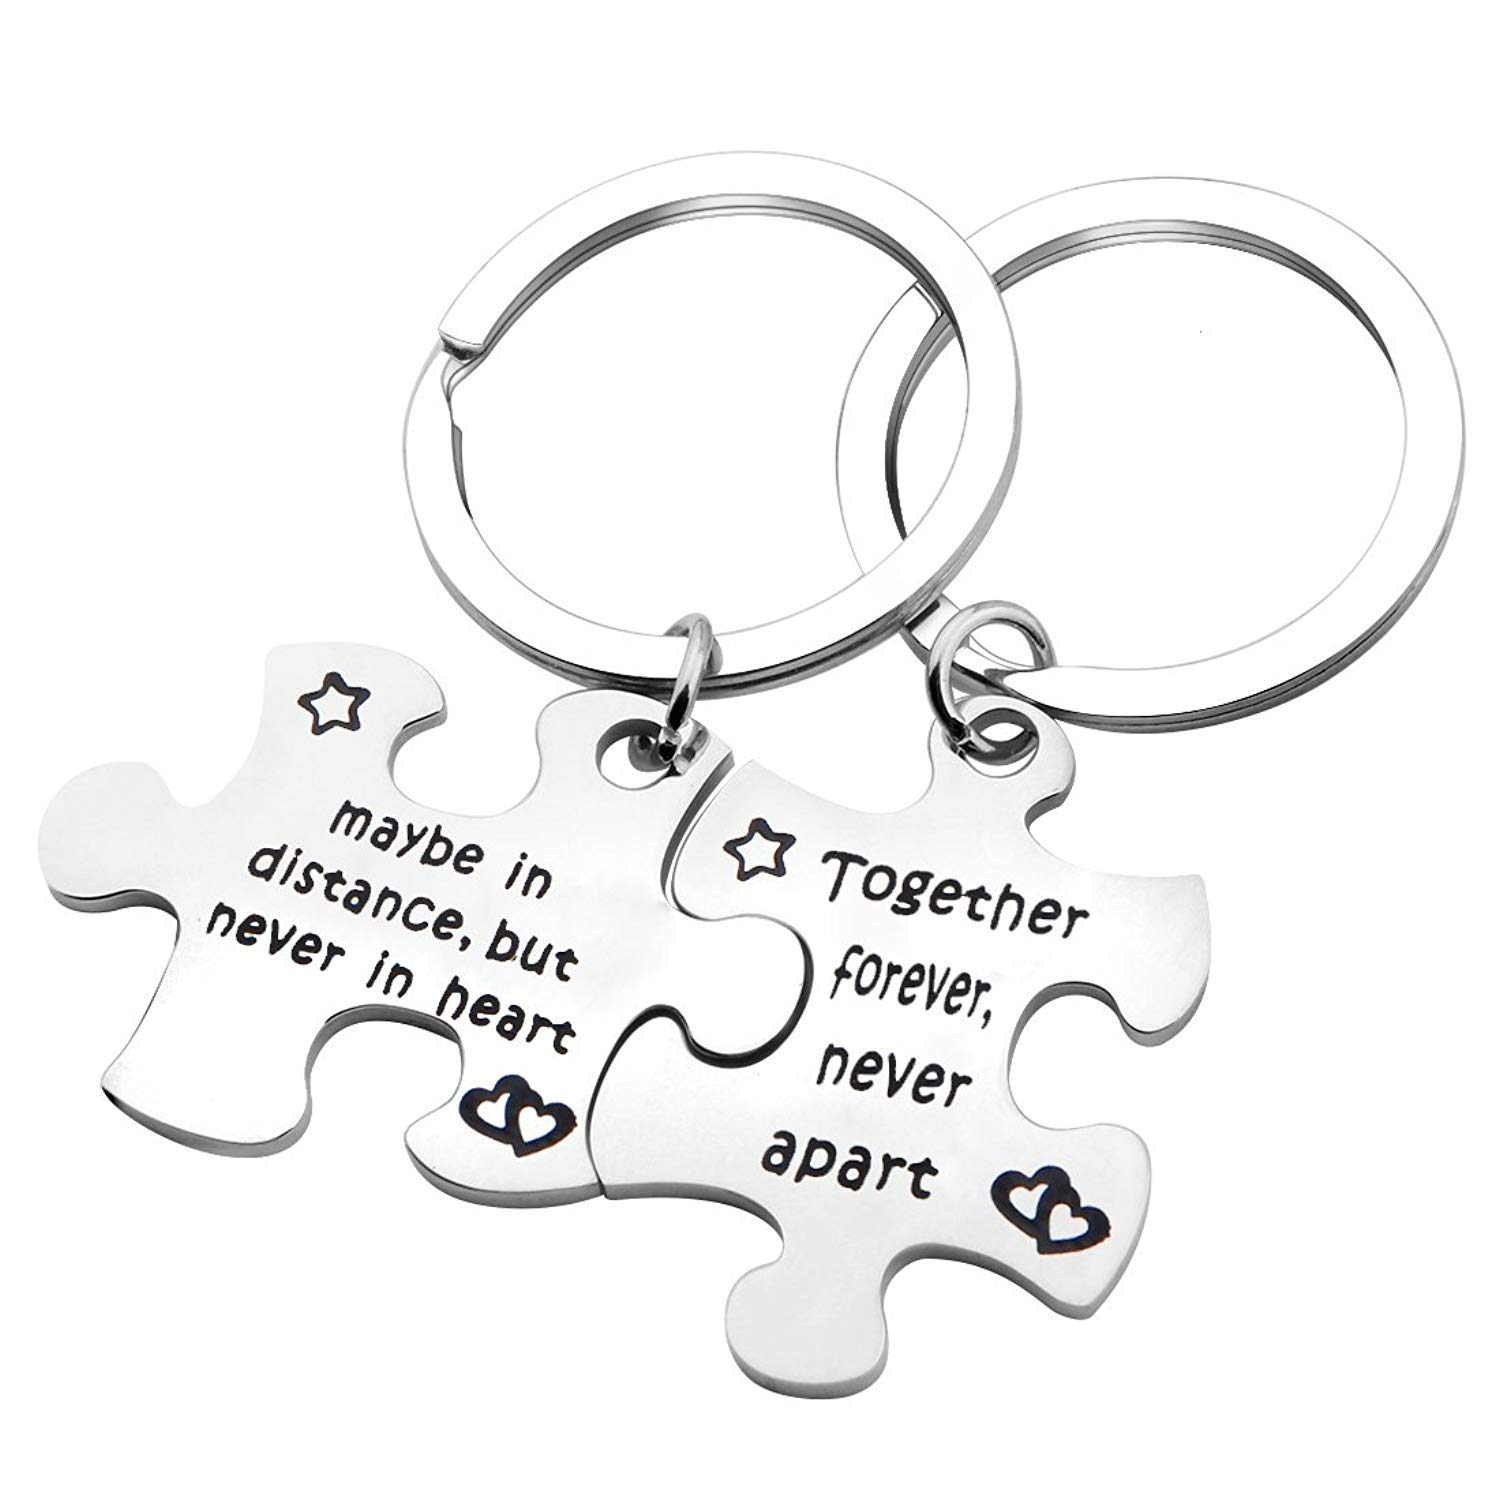 MYOSPARK Cpuple's Keychain Set of Two Long Distance Relationship Gift Puzzle Piece Keychain Set (Never Apart Keychain)